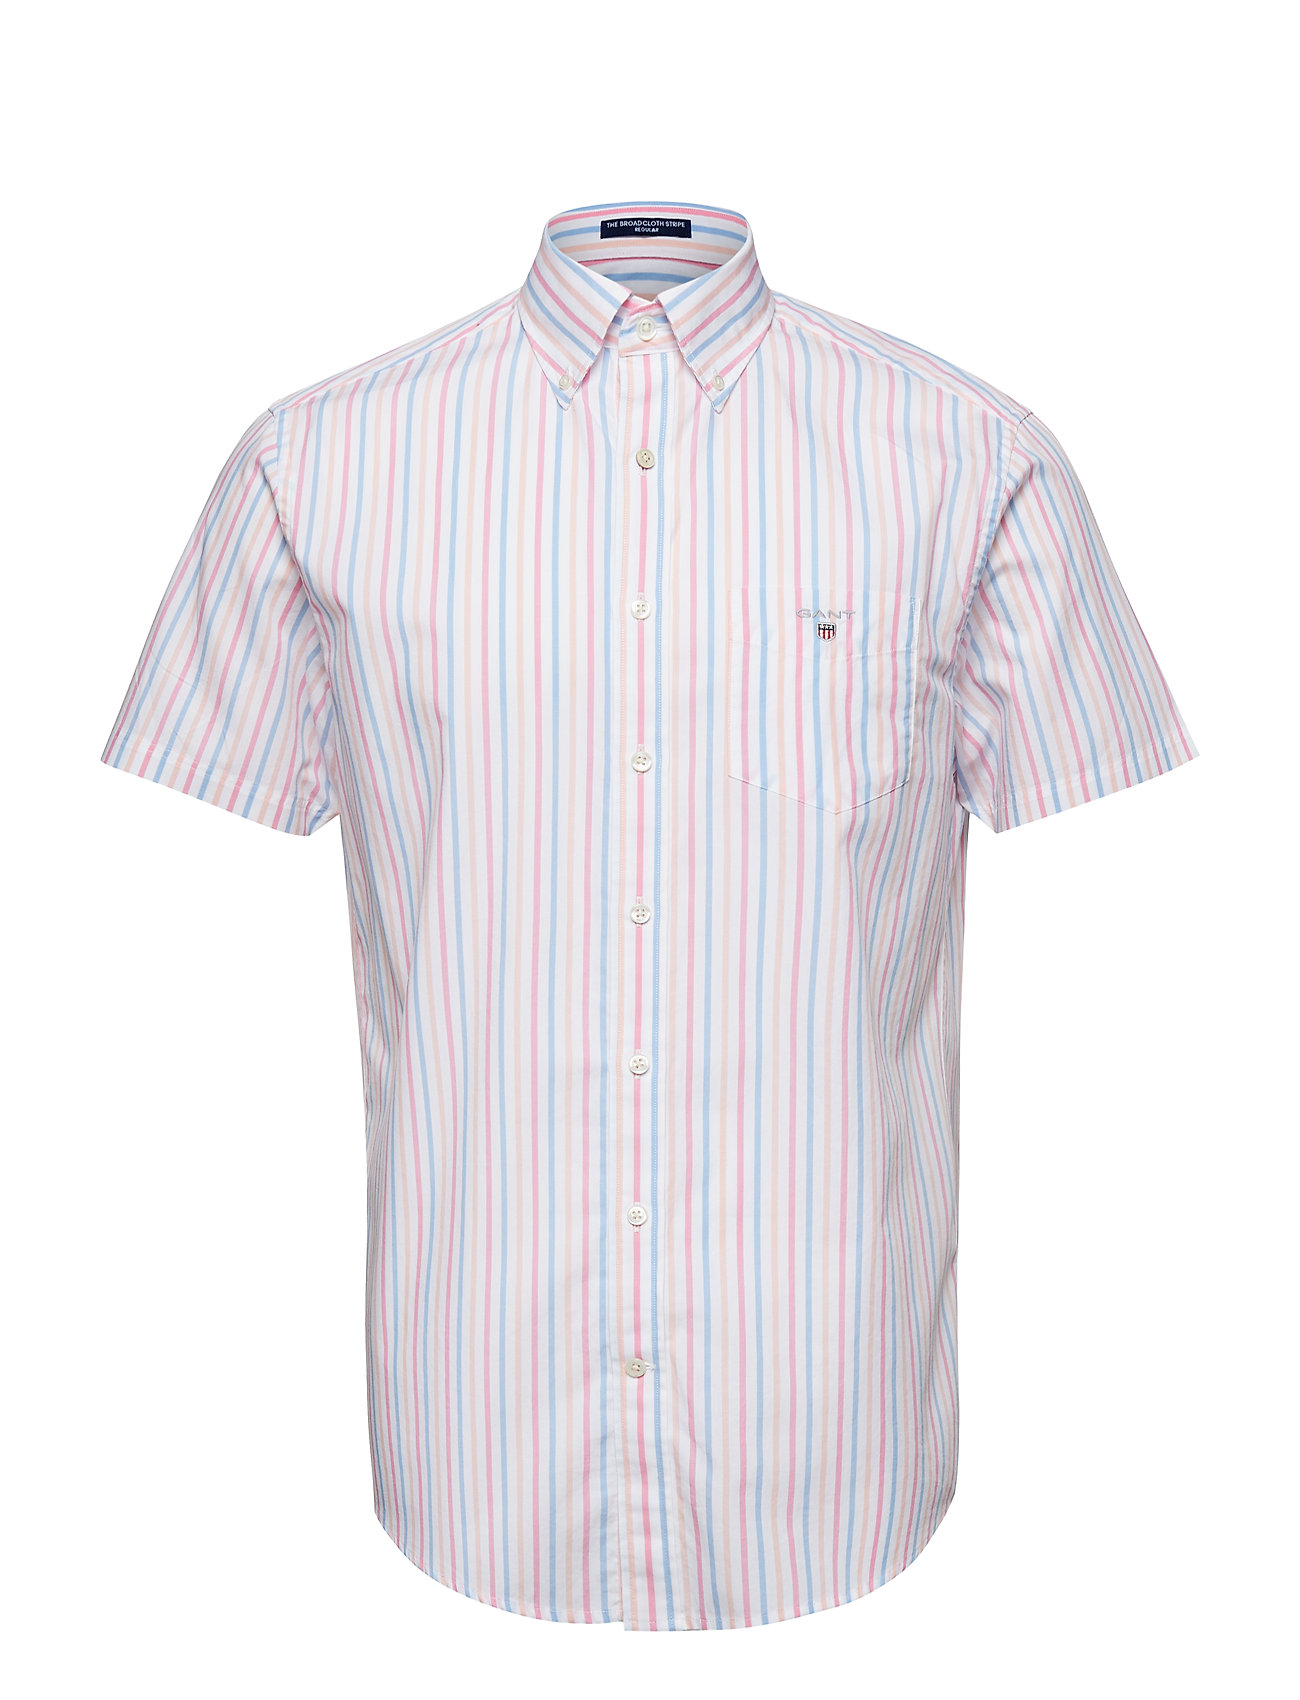 Gant THE BROADCL 3 COL STRIPE REG SS BD - PINK ROSE